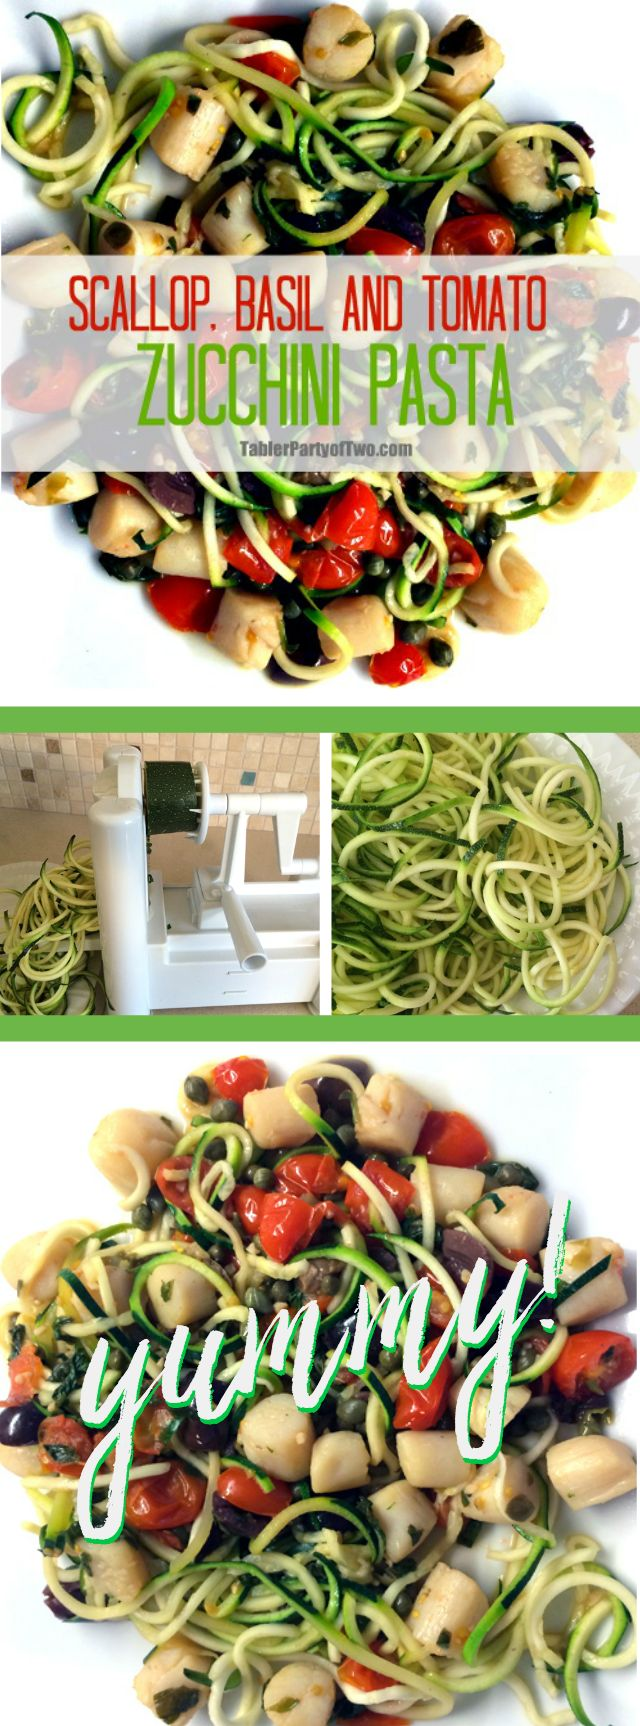 Scallop, Basil and Tomato Zucchini  Pasta recipe - This is an incredibly healthy and delicious dish! Plus it's paleo friendly. The zucchini pasta is so much quicker than regular pasta. And can I just say... I LOVE my spiralizer that makes these zoodles! TablerPartyofTwo.com